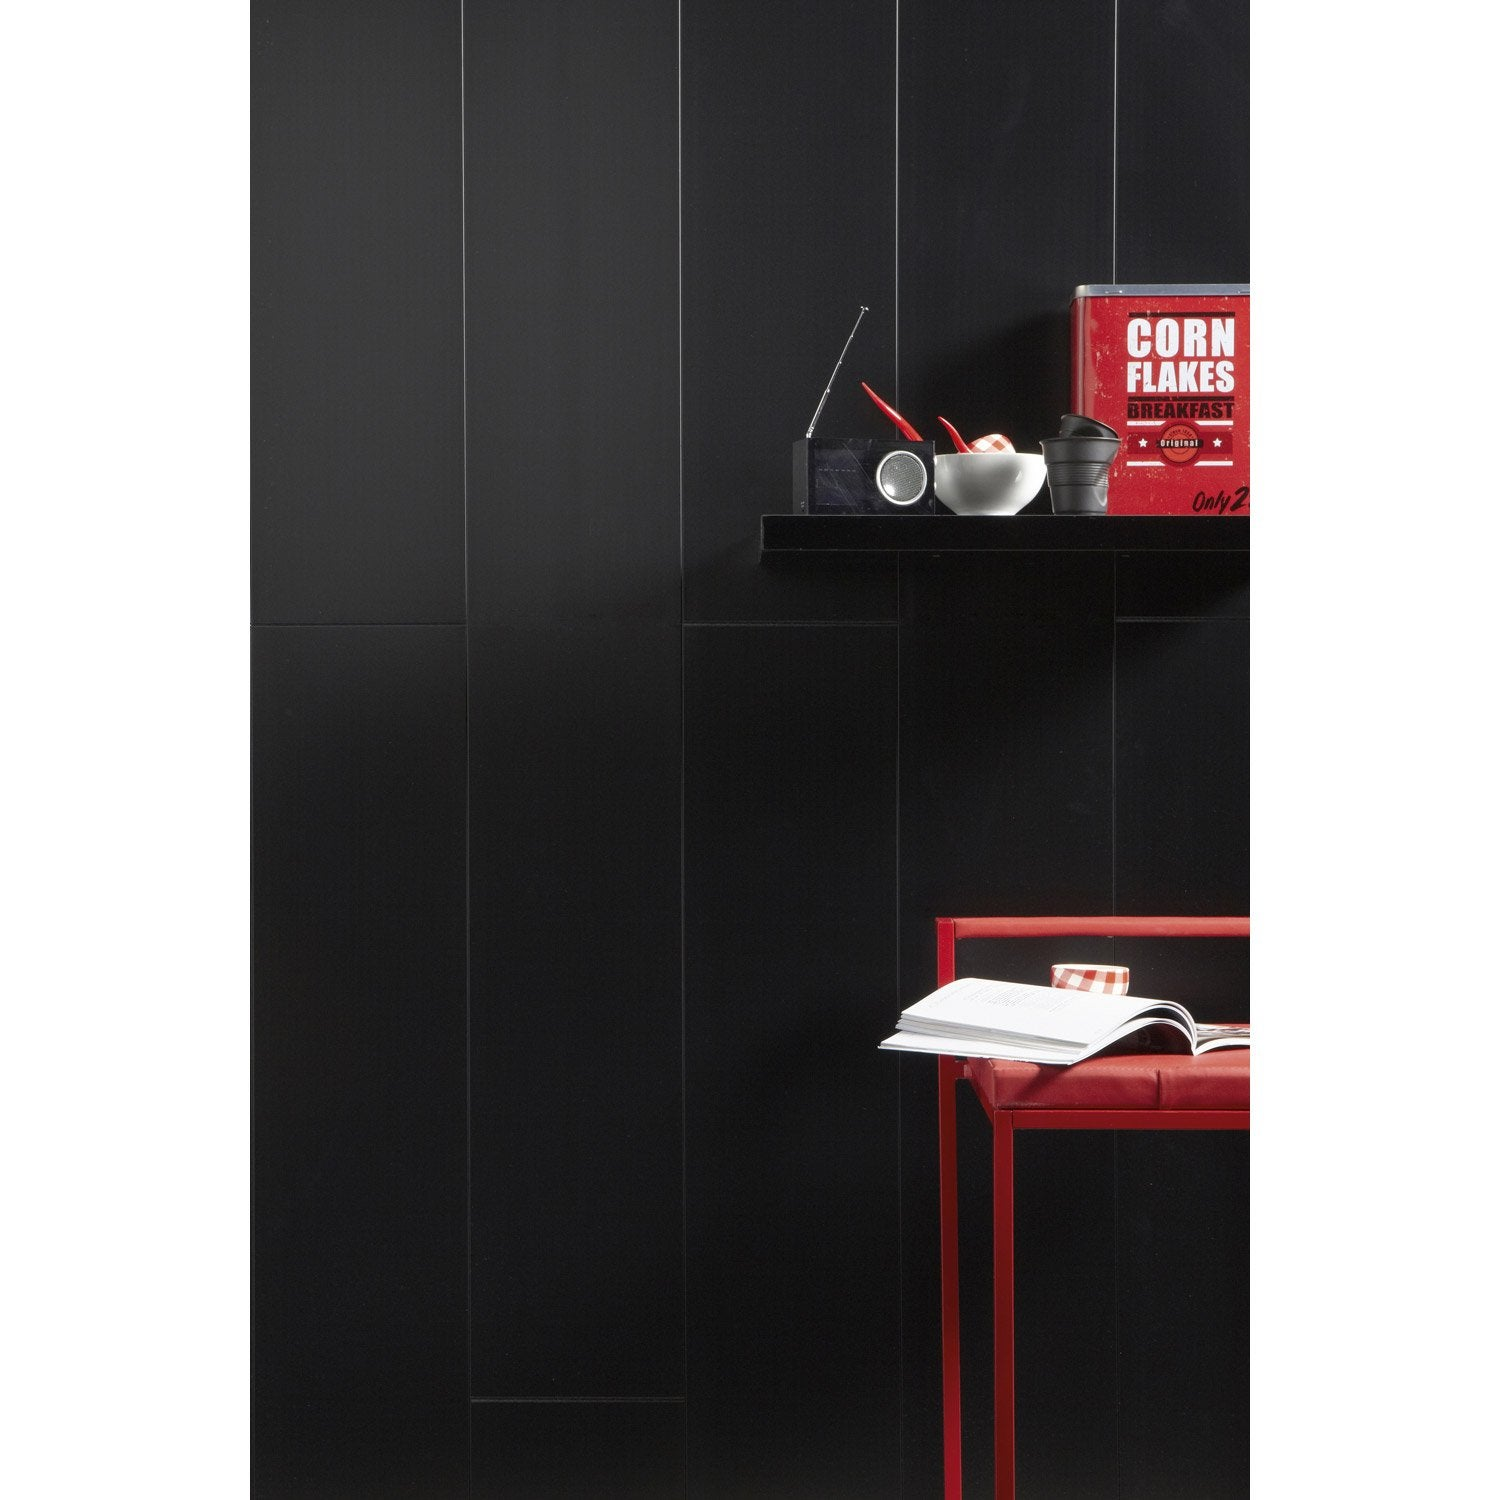 lambris bois exterieur castorama id e. Black Bedroom Furniture Sets. Home Design Ideas